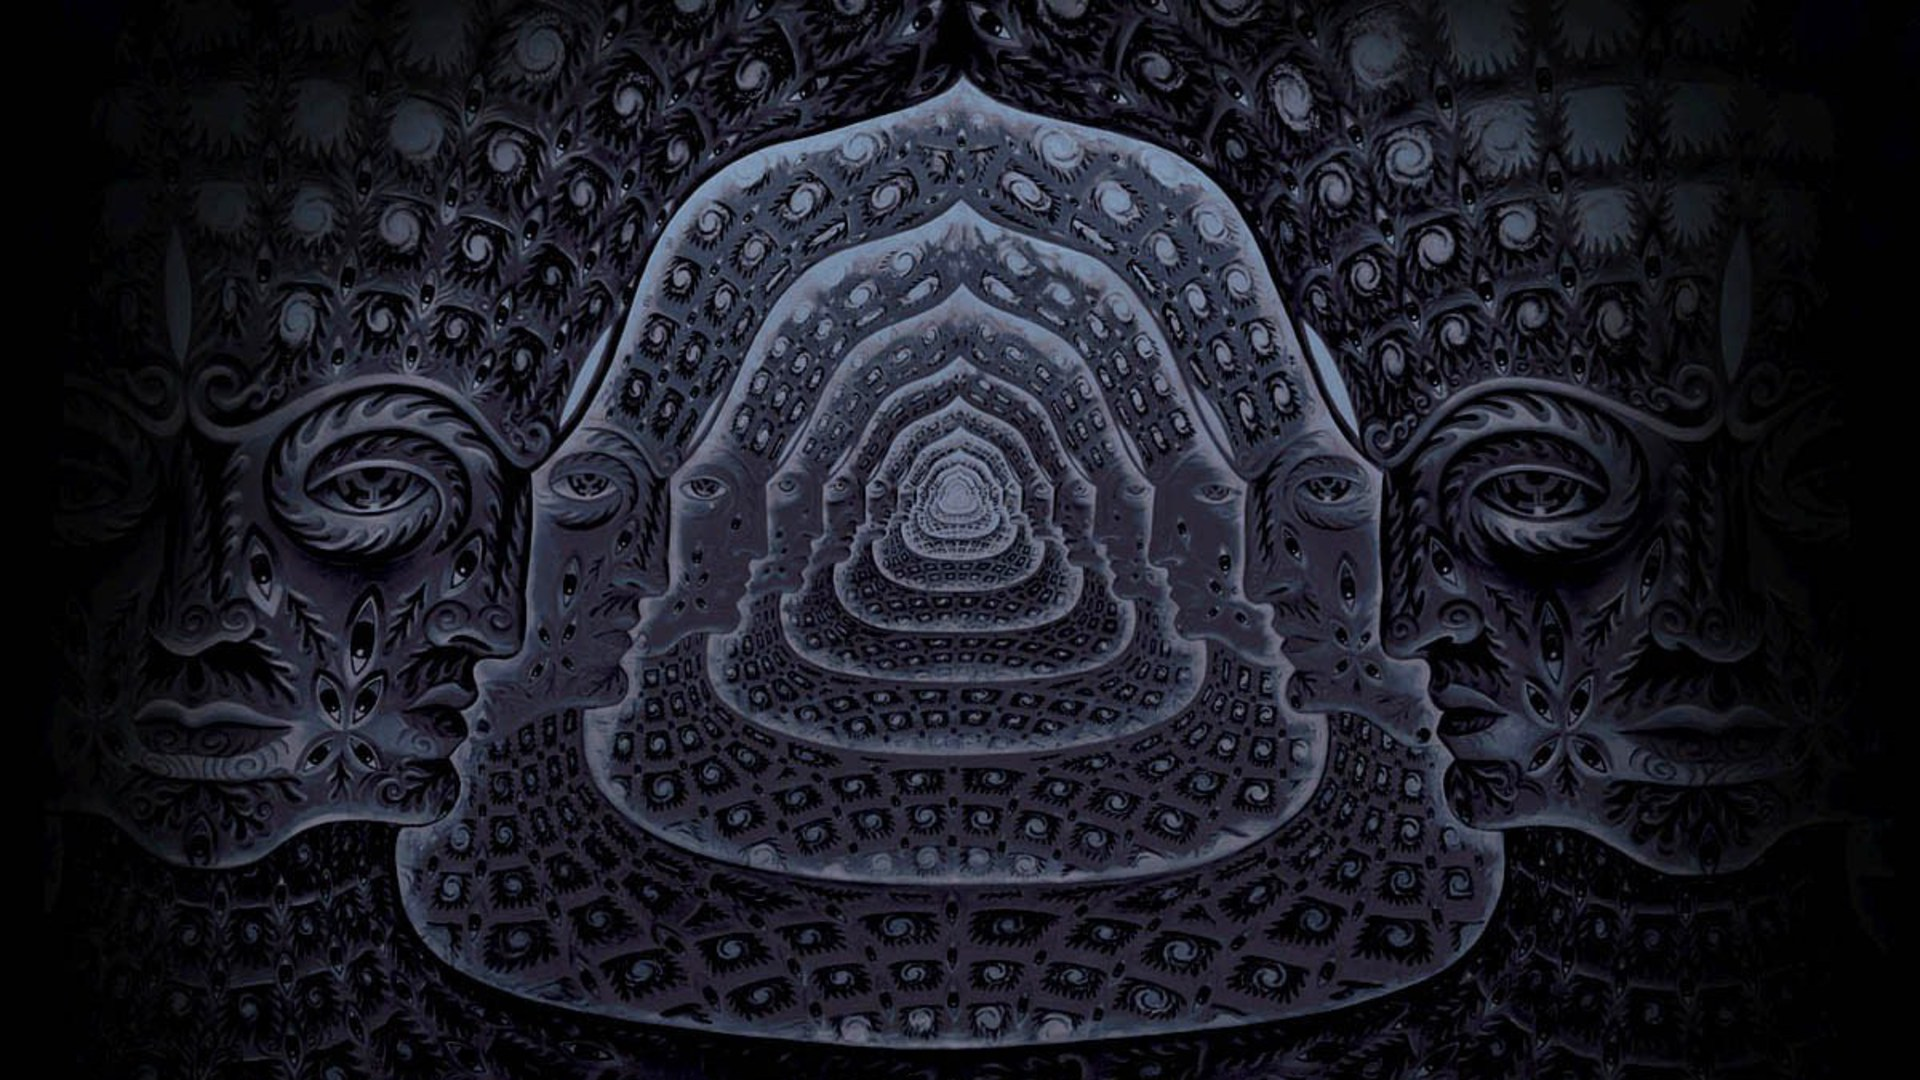 Tool Band Wallpaper